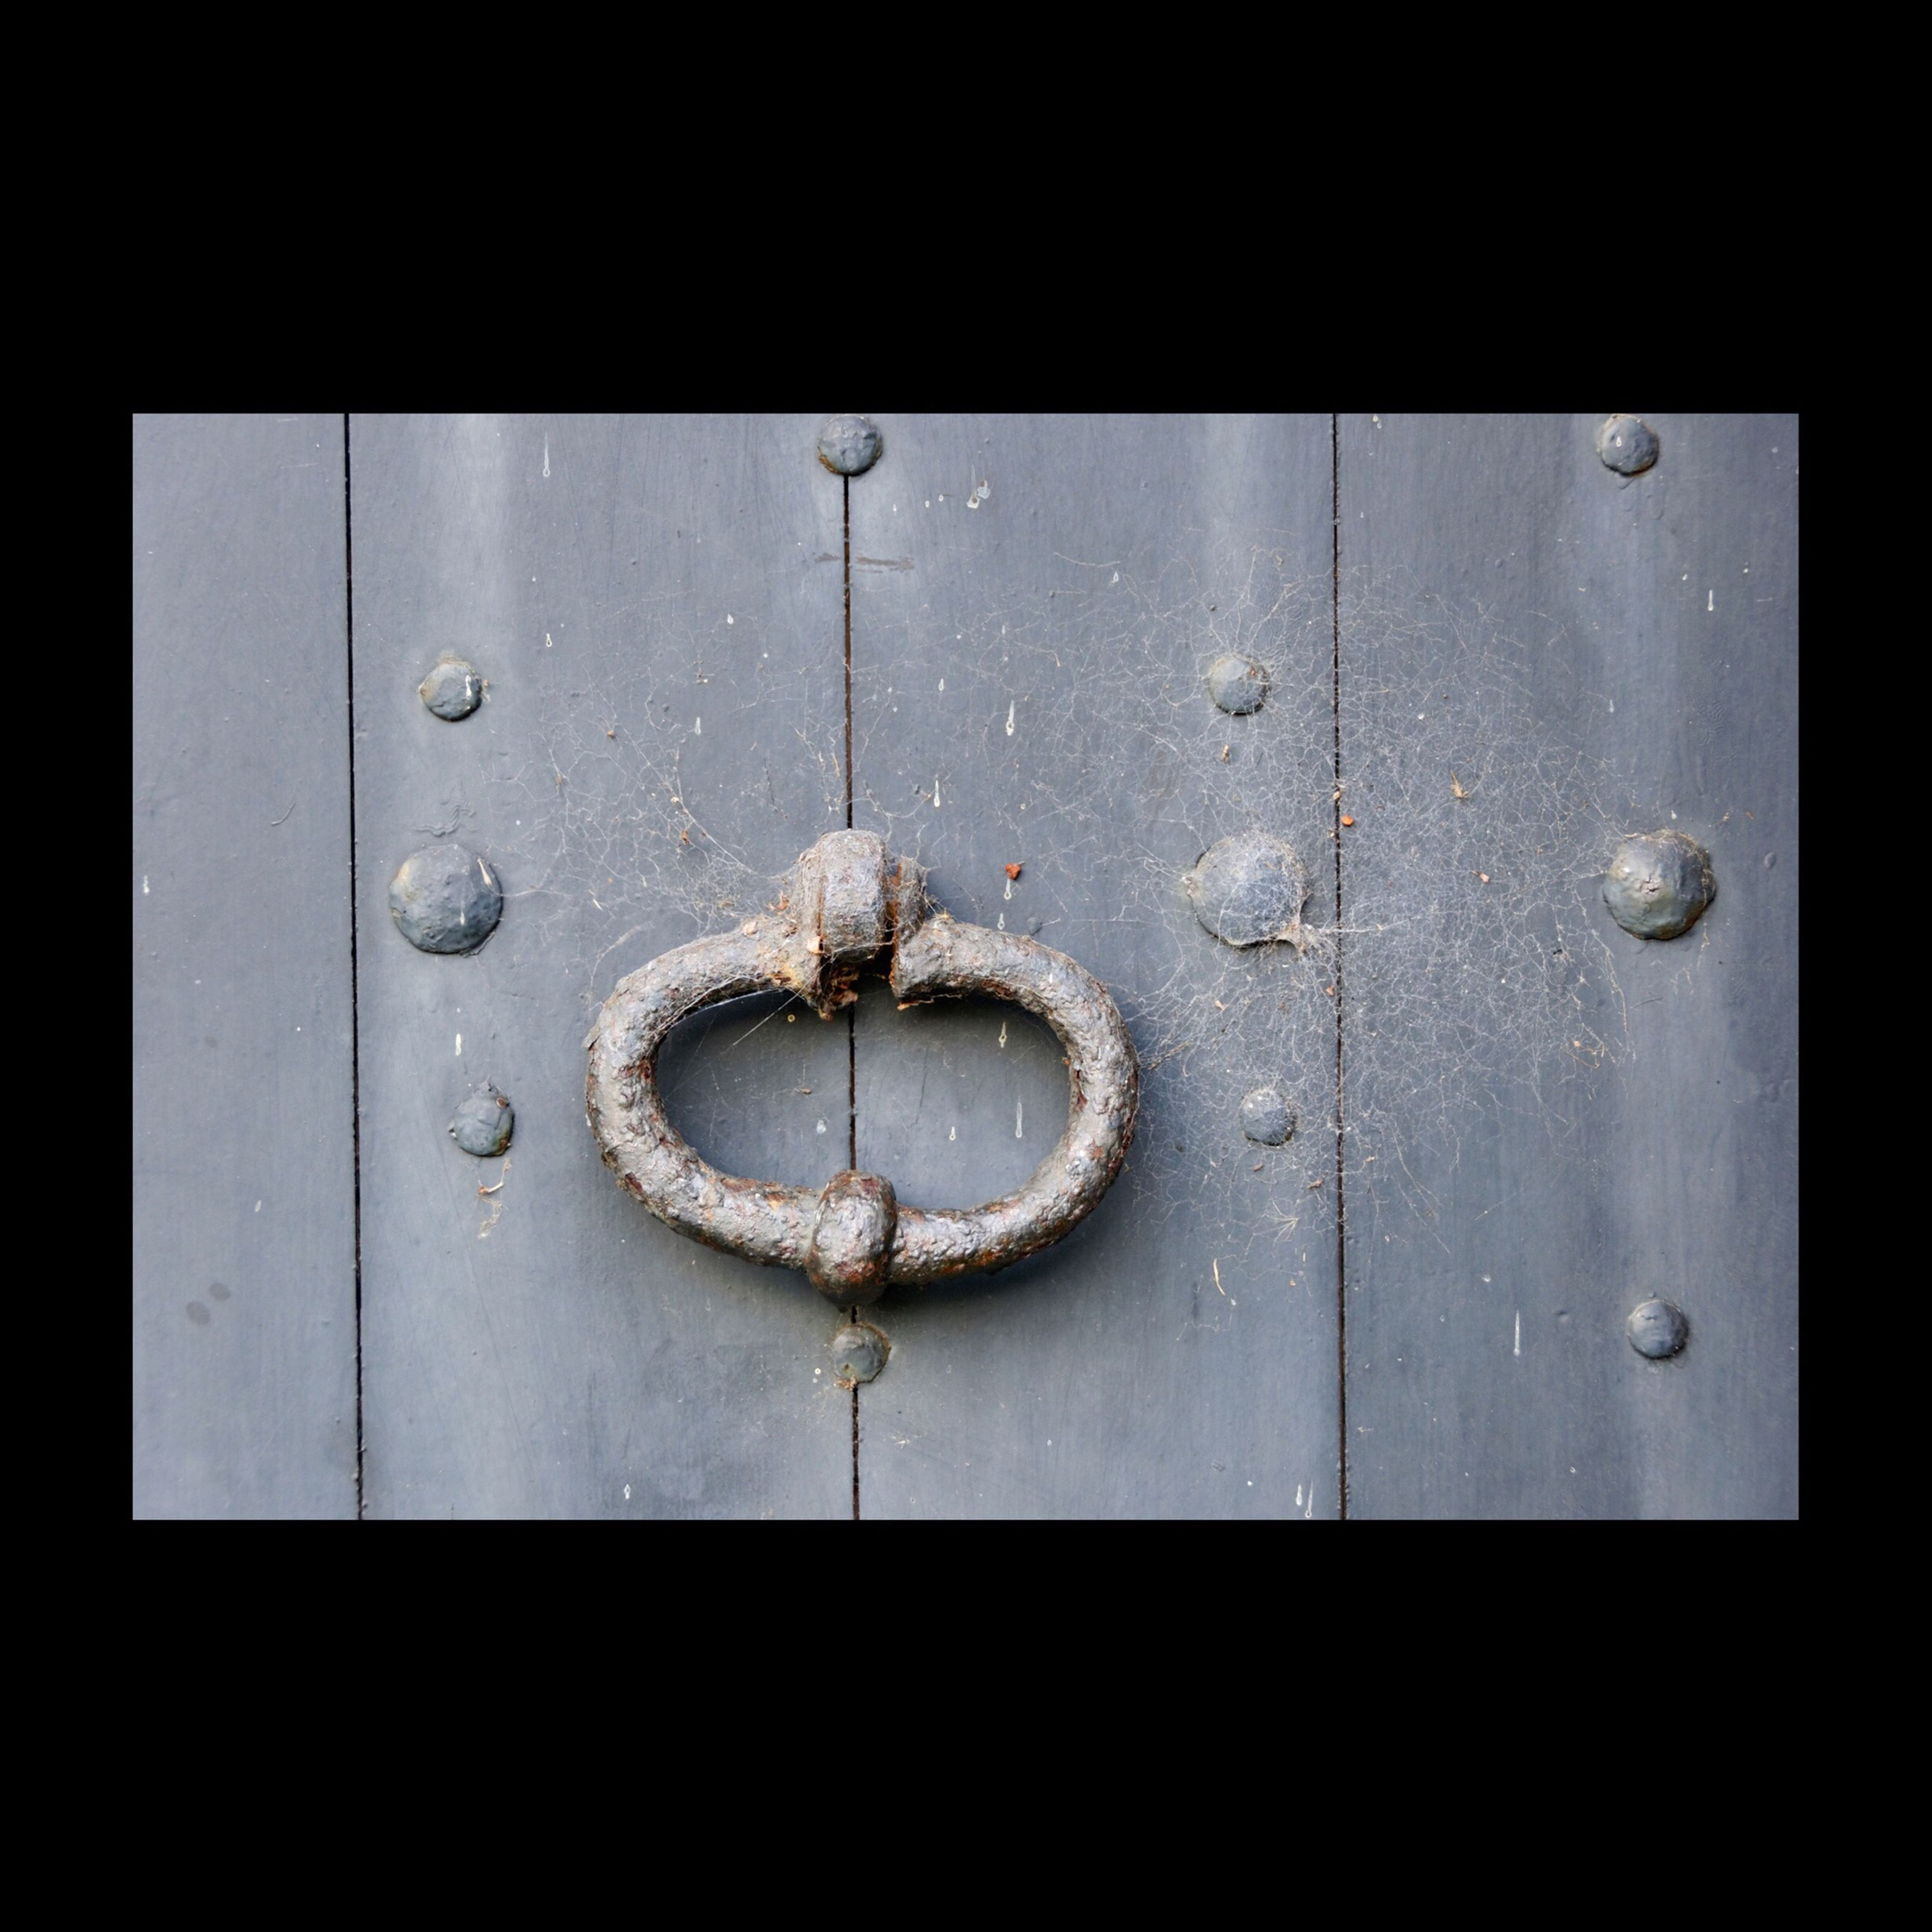 door, indoors, close-up, metal, safety, protection, closed, security, full frame, backgrounds, built structure, wall - building feature, circle, metallic, wood - material, pattern, no people, old, hanging, architecture